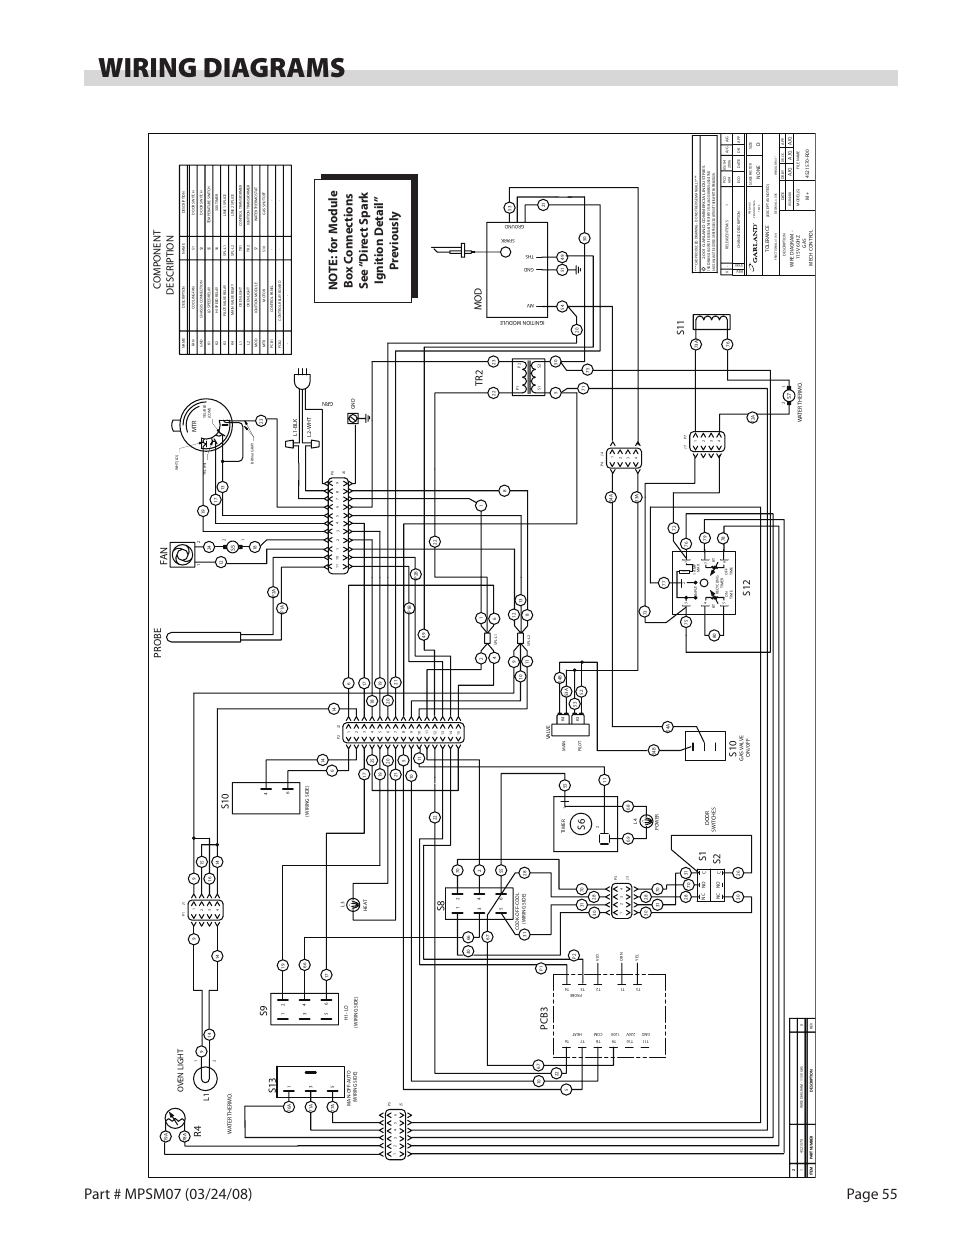 wiring diagrams, s11 r4, fa n garland mp gd 10 s user  garland mco e 5 c user manual page 13